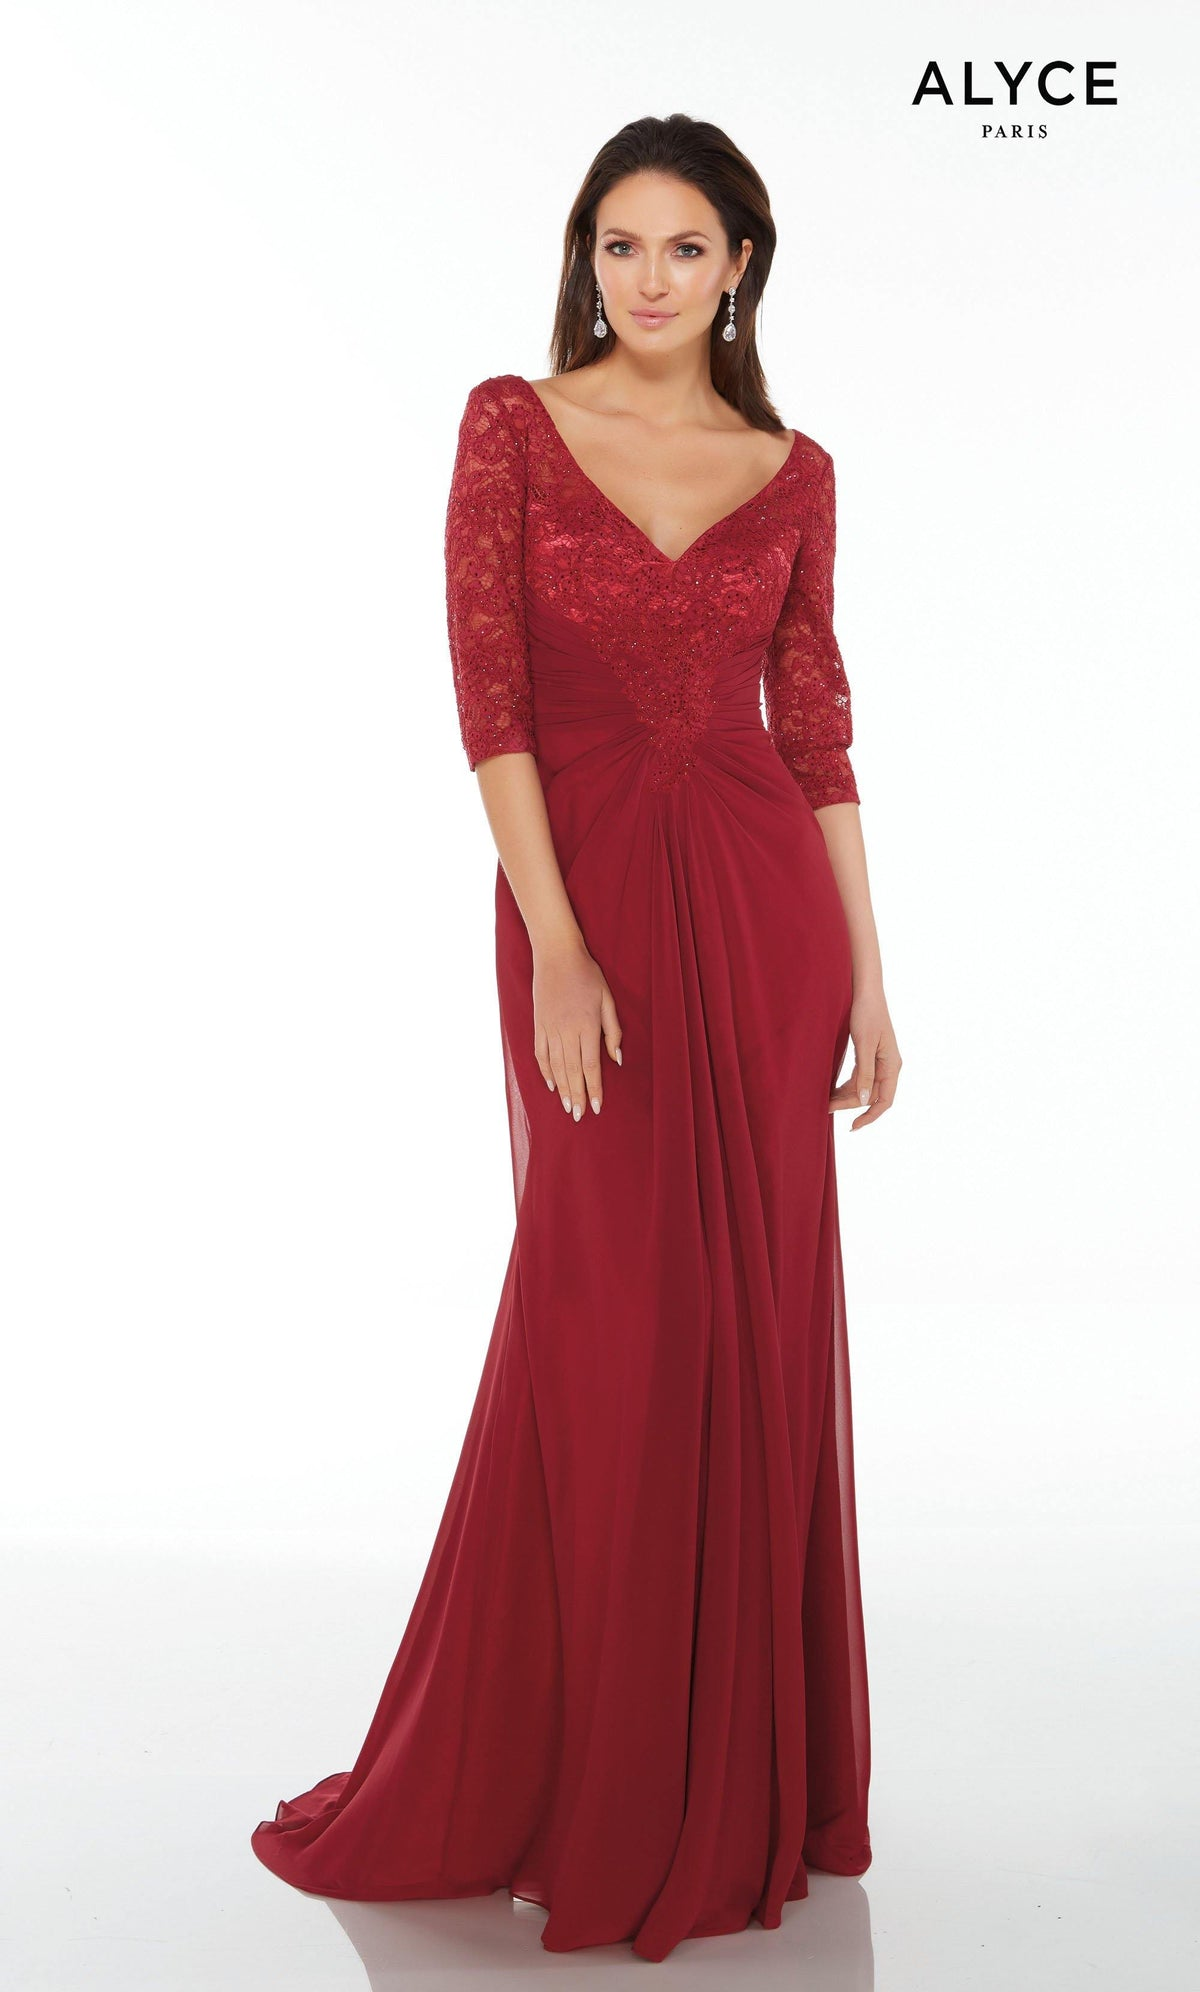 Long Wine mother of the groom dress with sleeves, a V-neckline, lace bodice, and gathered waistline